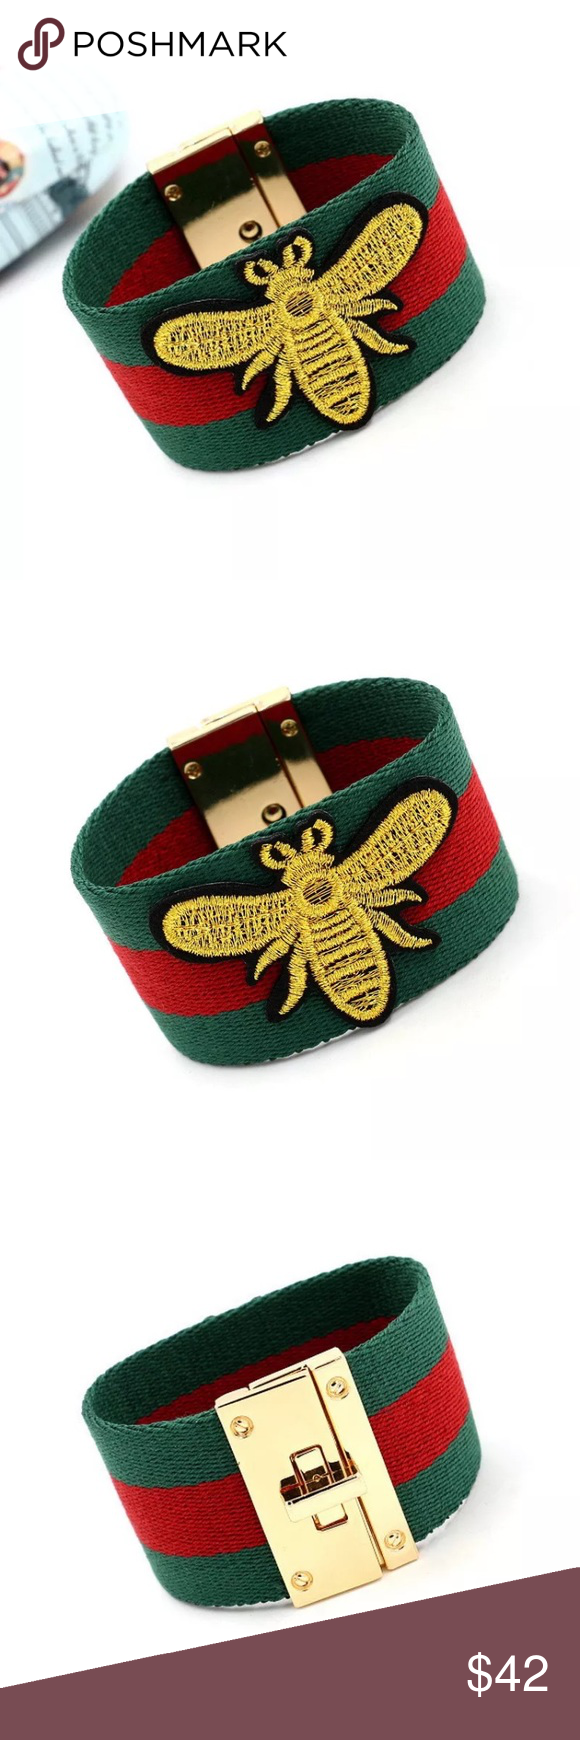 caacb1aee GUCCI style bracelet red green stripes gold bee Bundle with other items to  get 15%